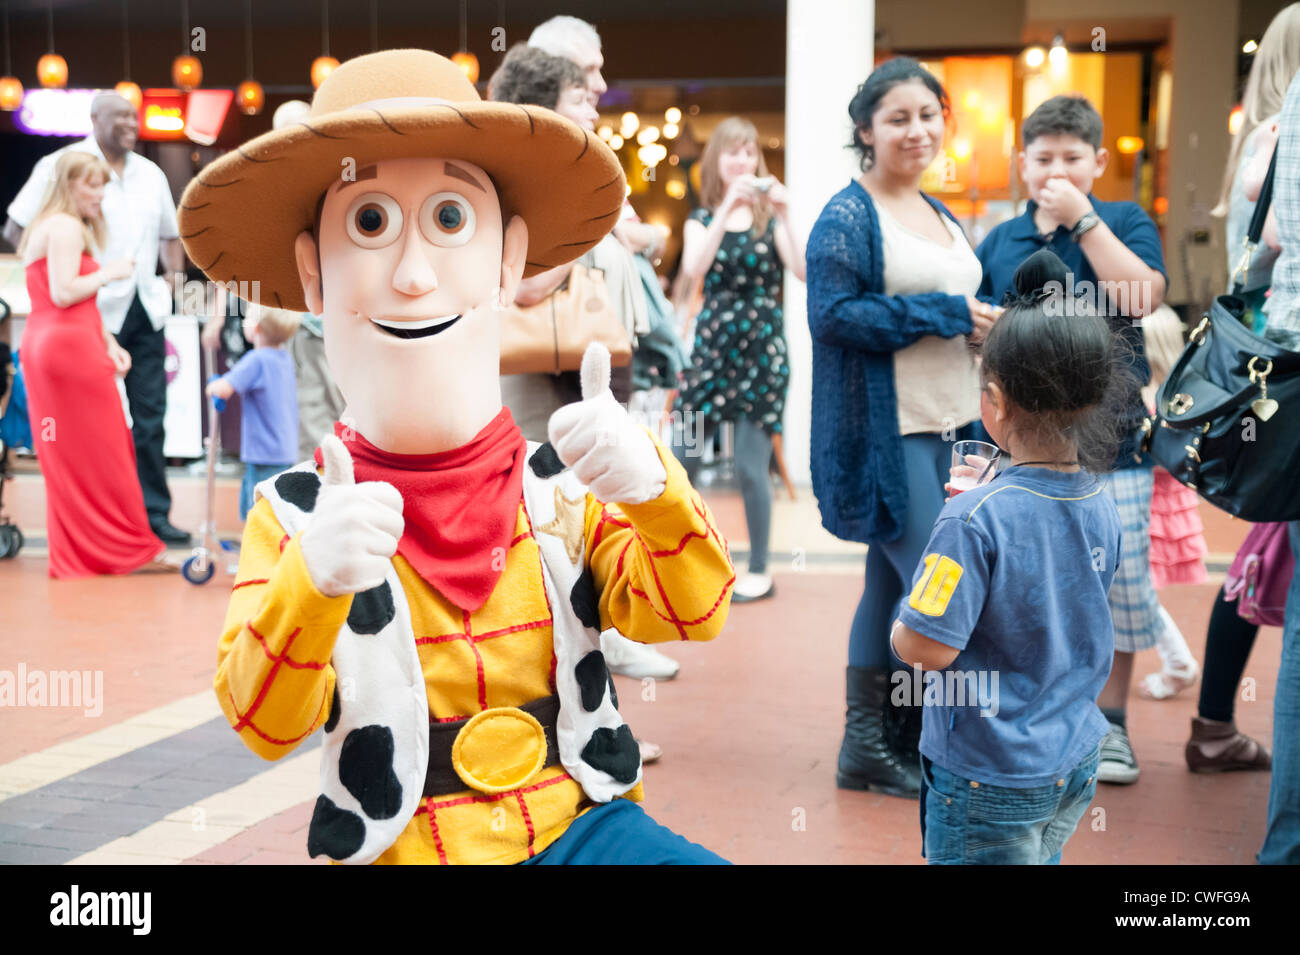 Children's entertainer Woody character from 'Toy Story', Cardiff, Wales. Children with a man dressed - Stock Image